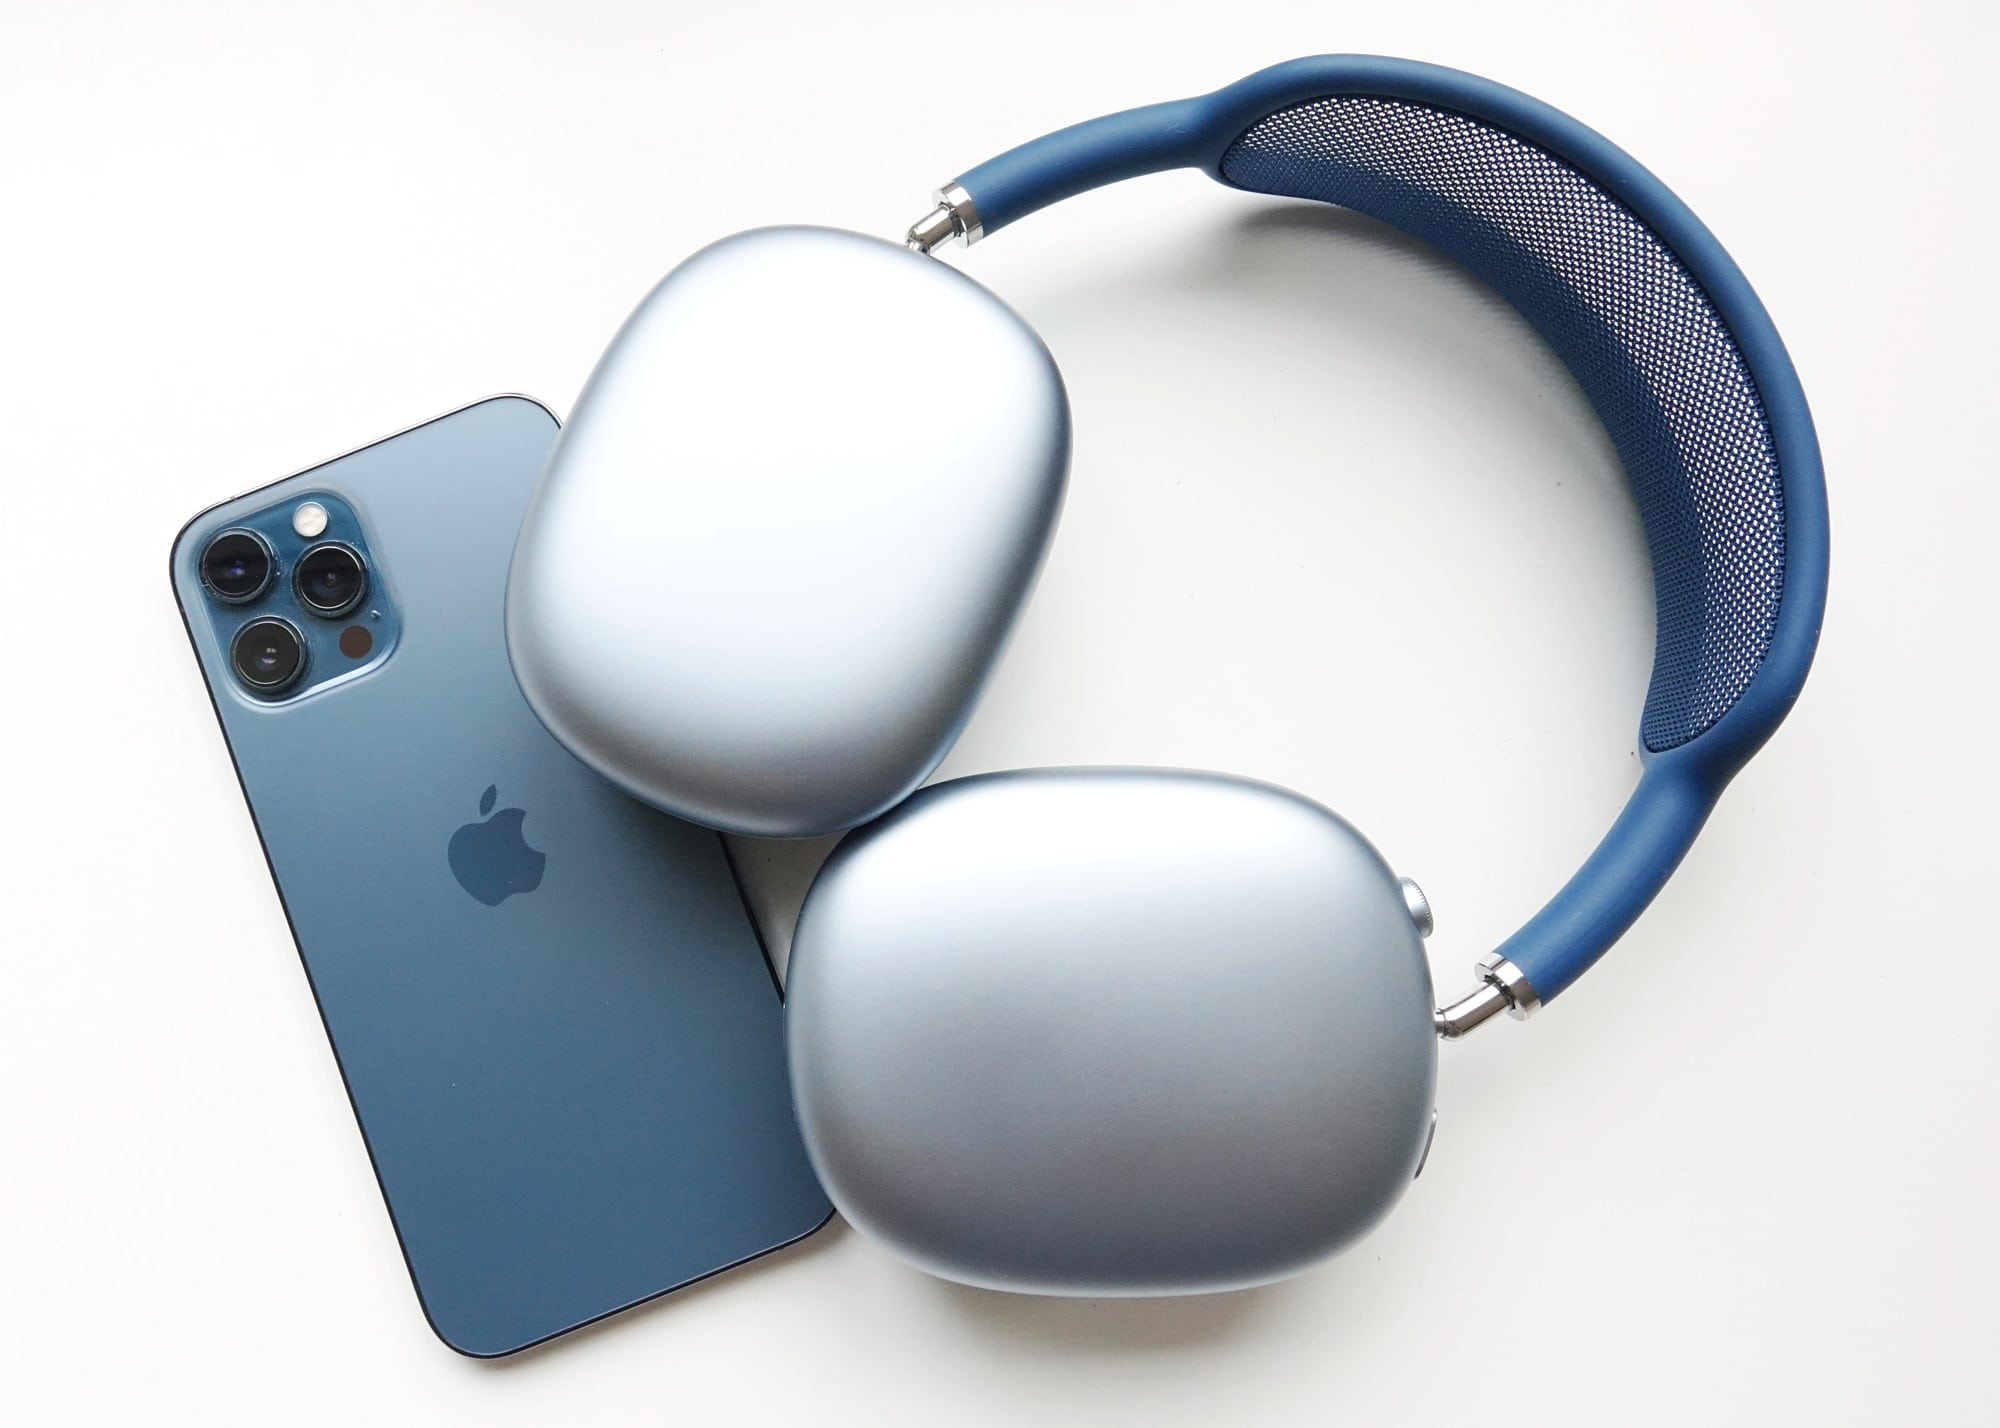 AirPods Max on the iPhone 12 Pro Max